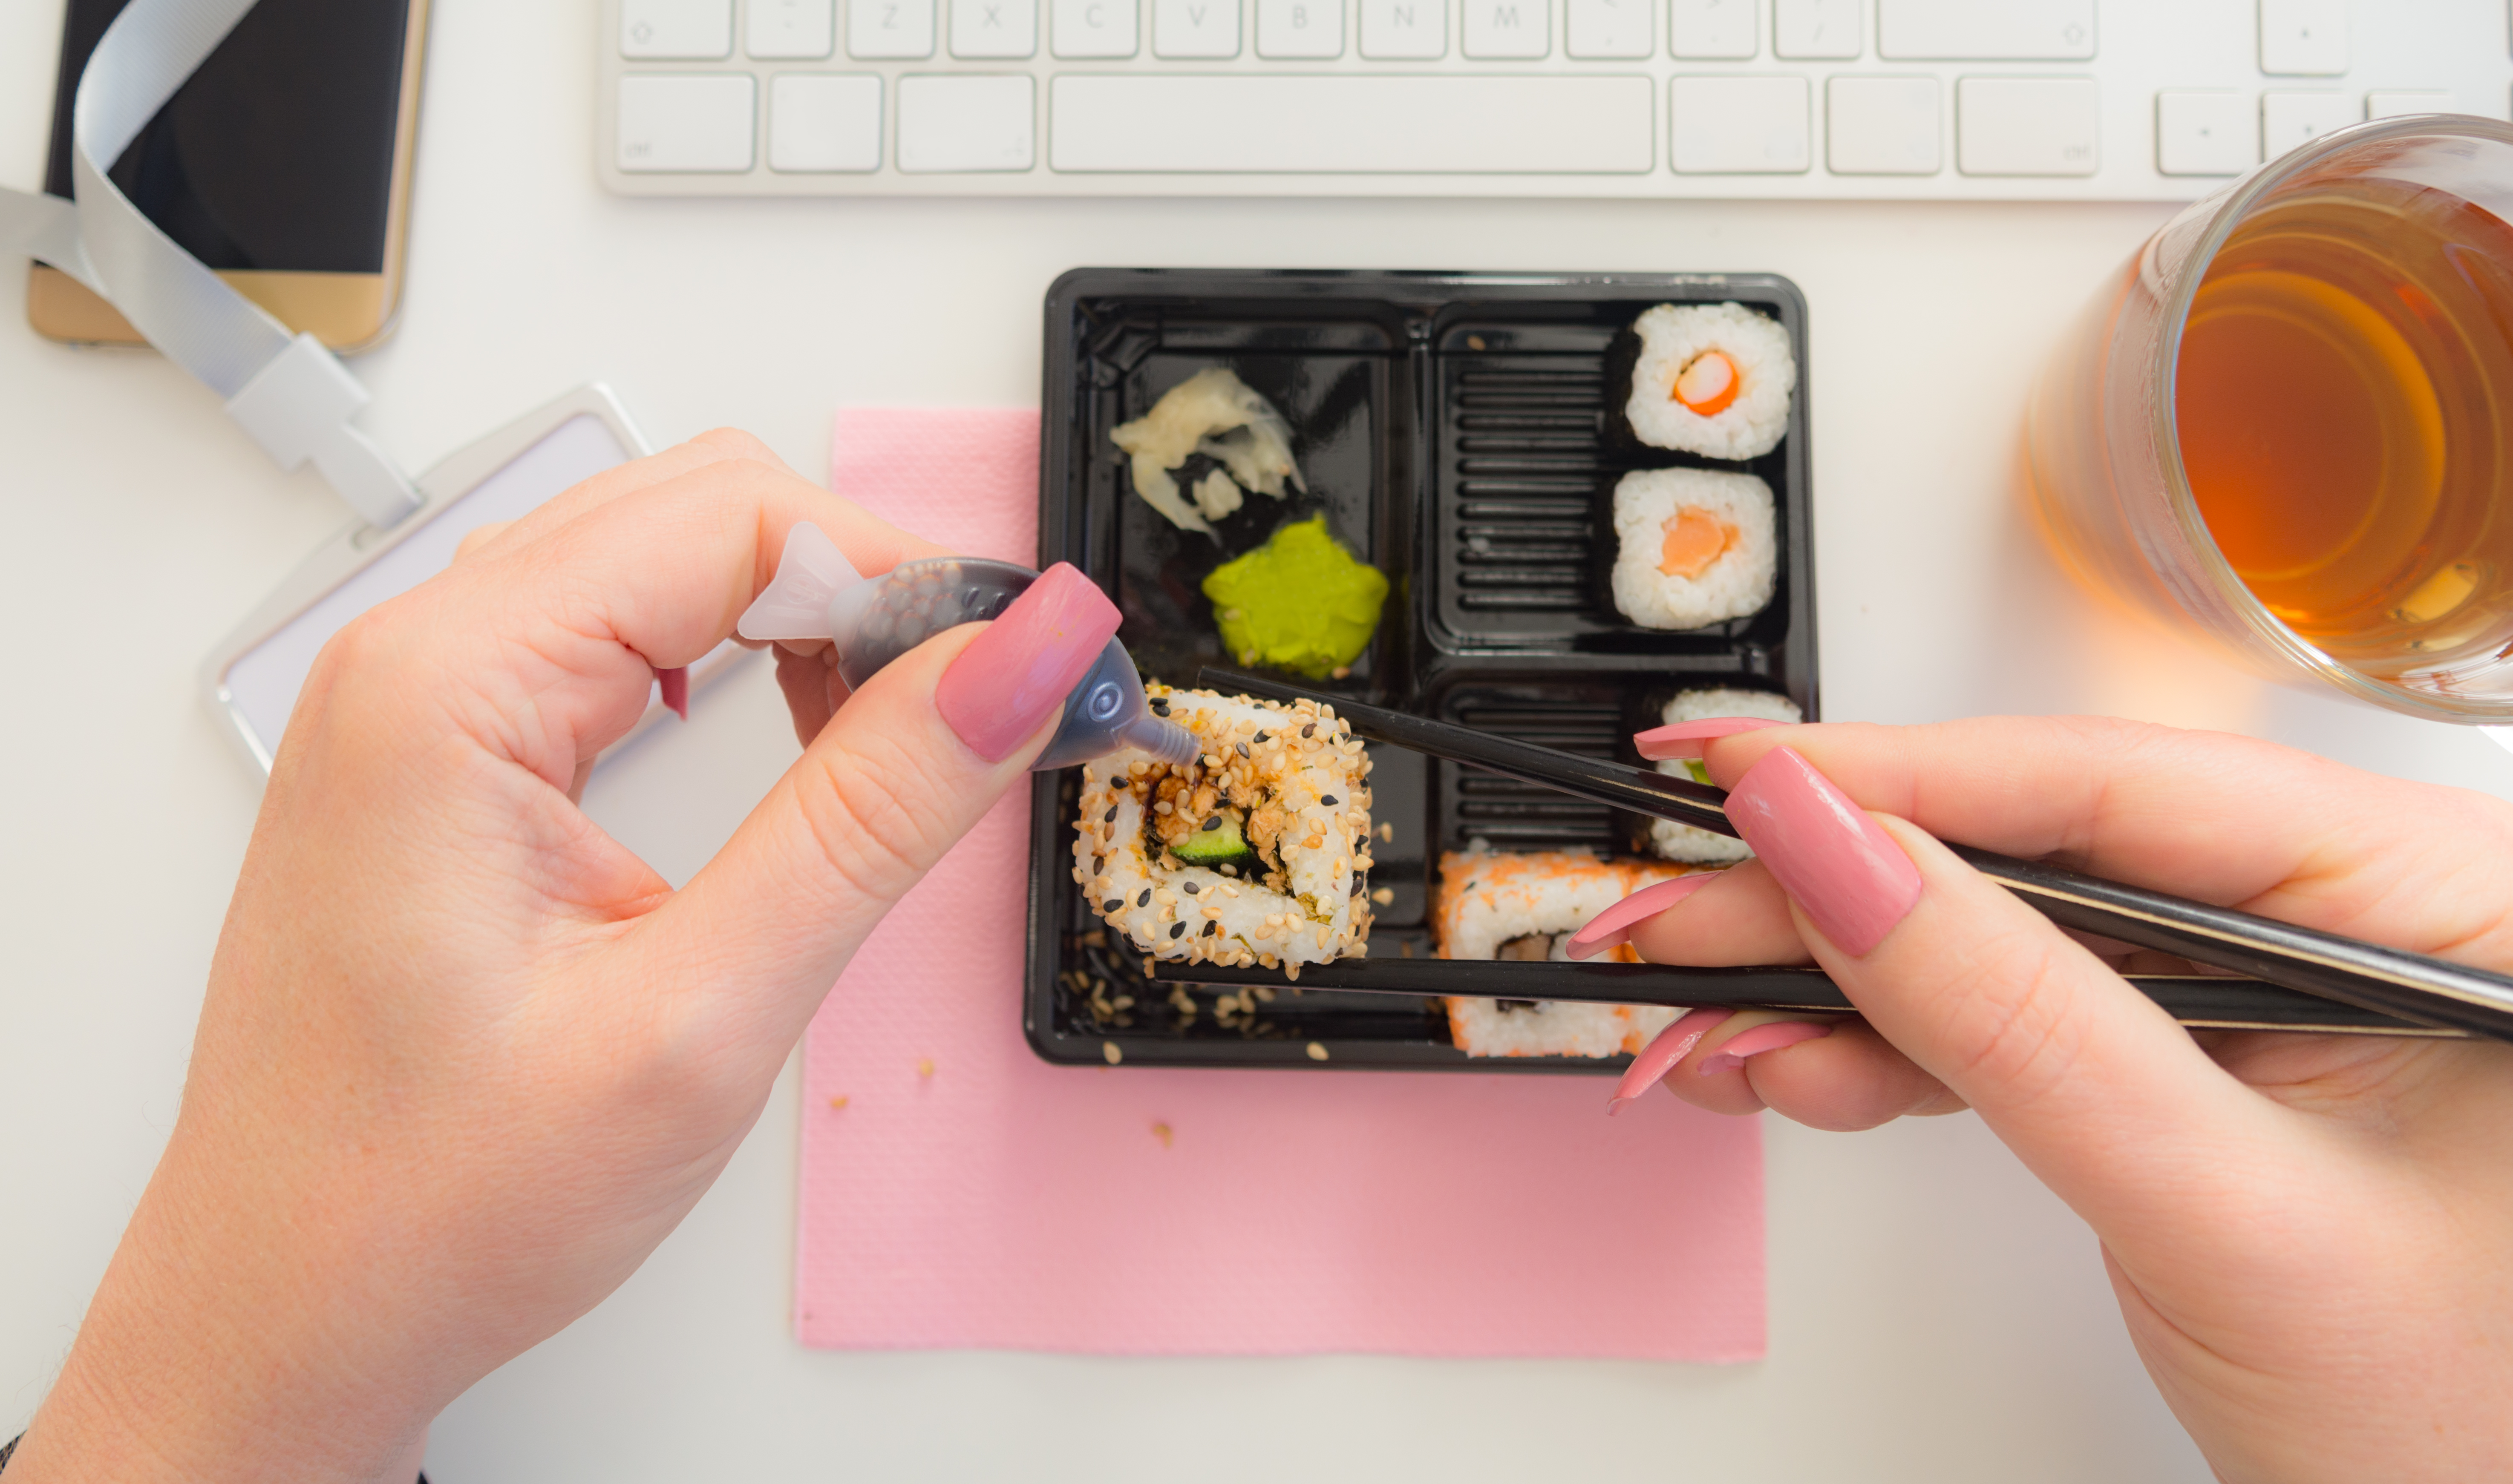 Personal perspective having Sushi during lunch at work